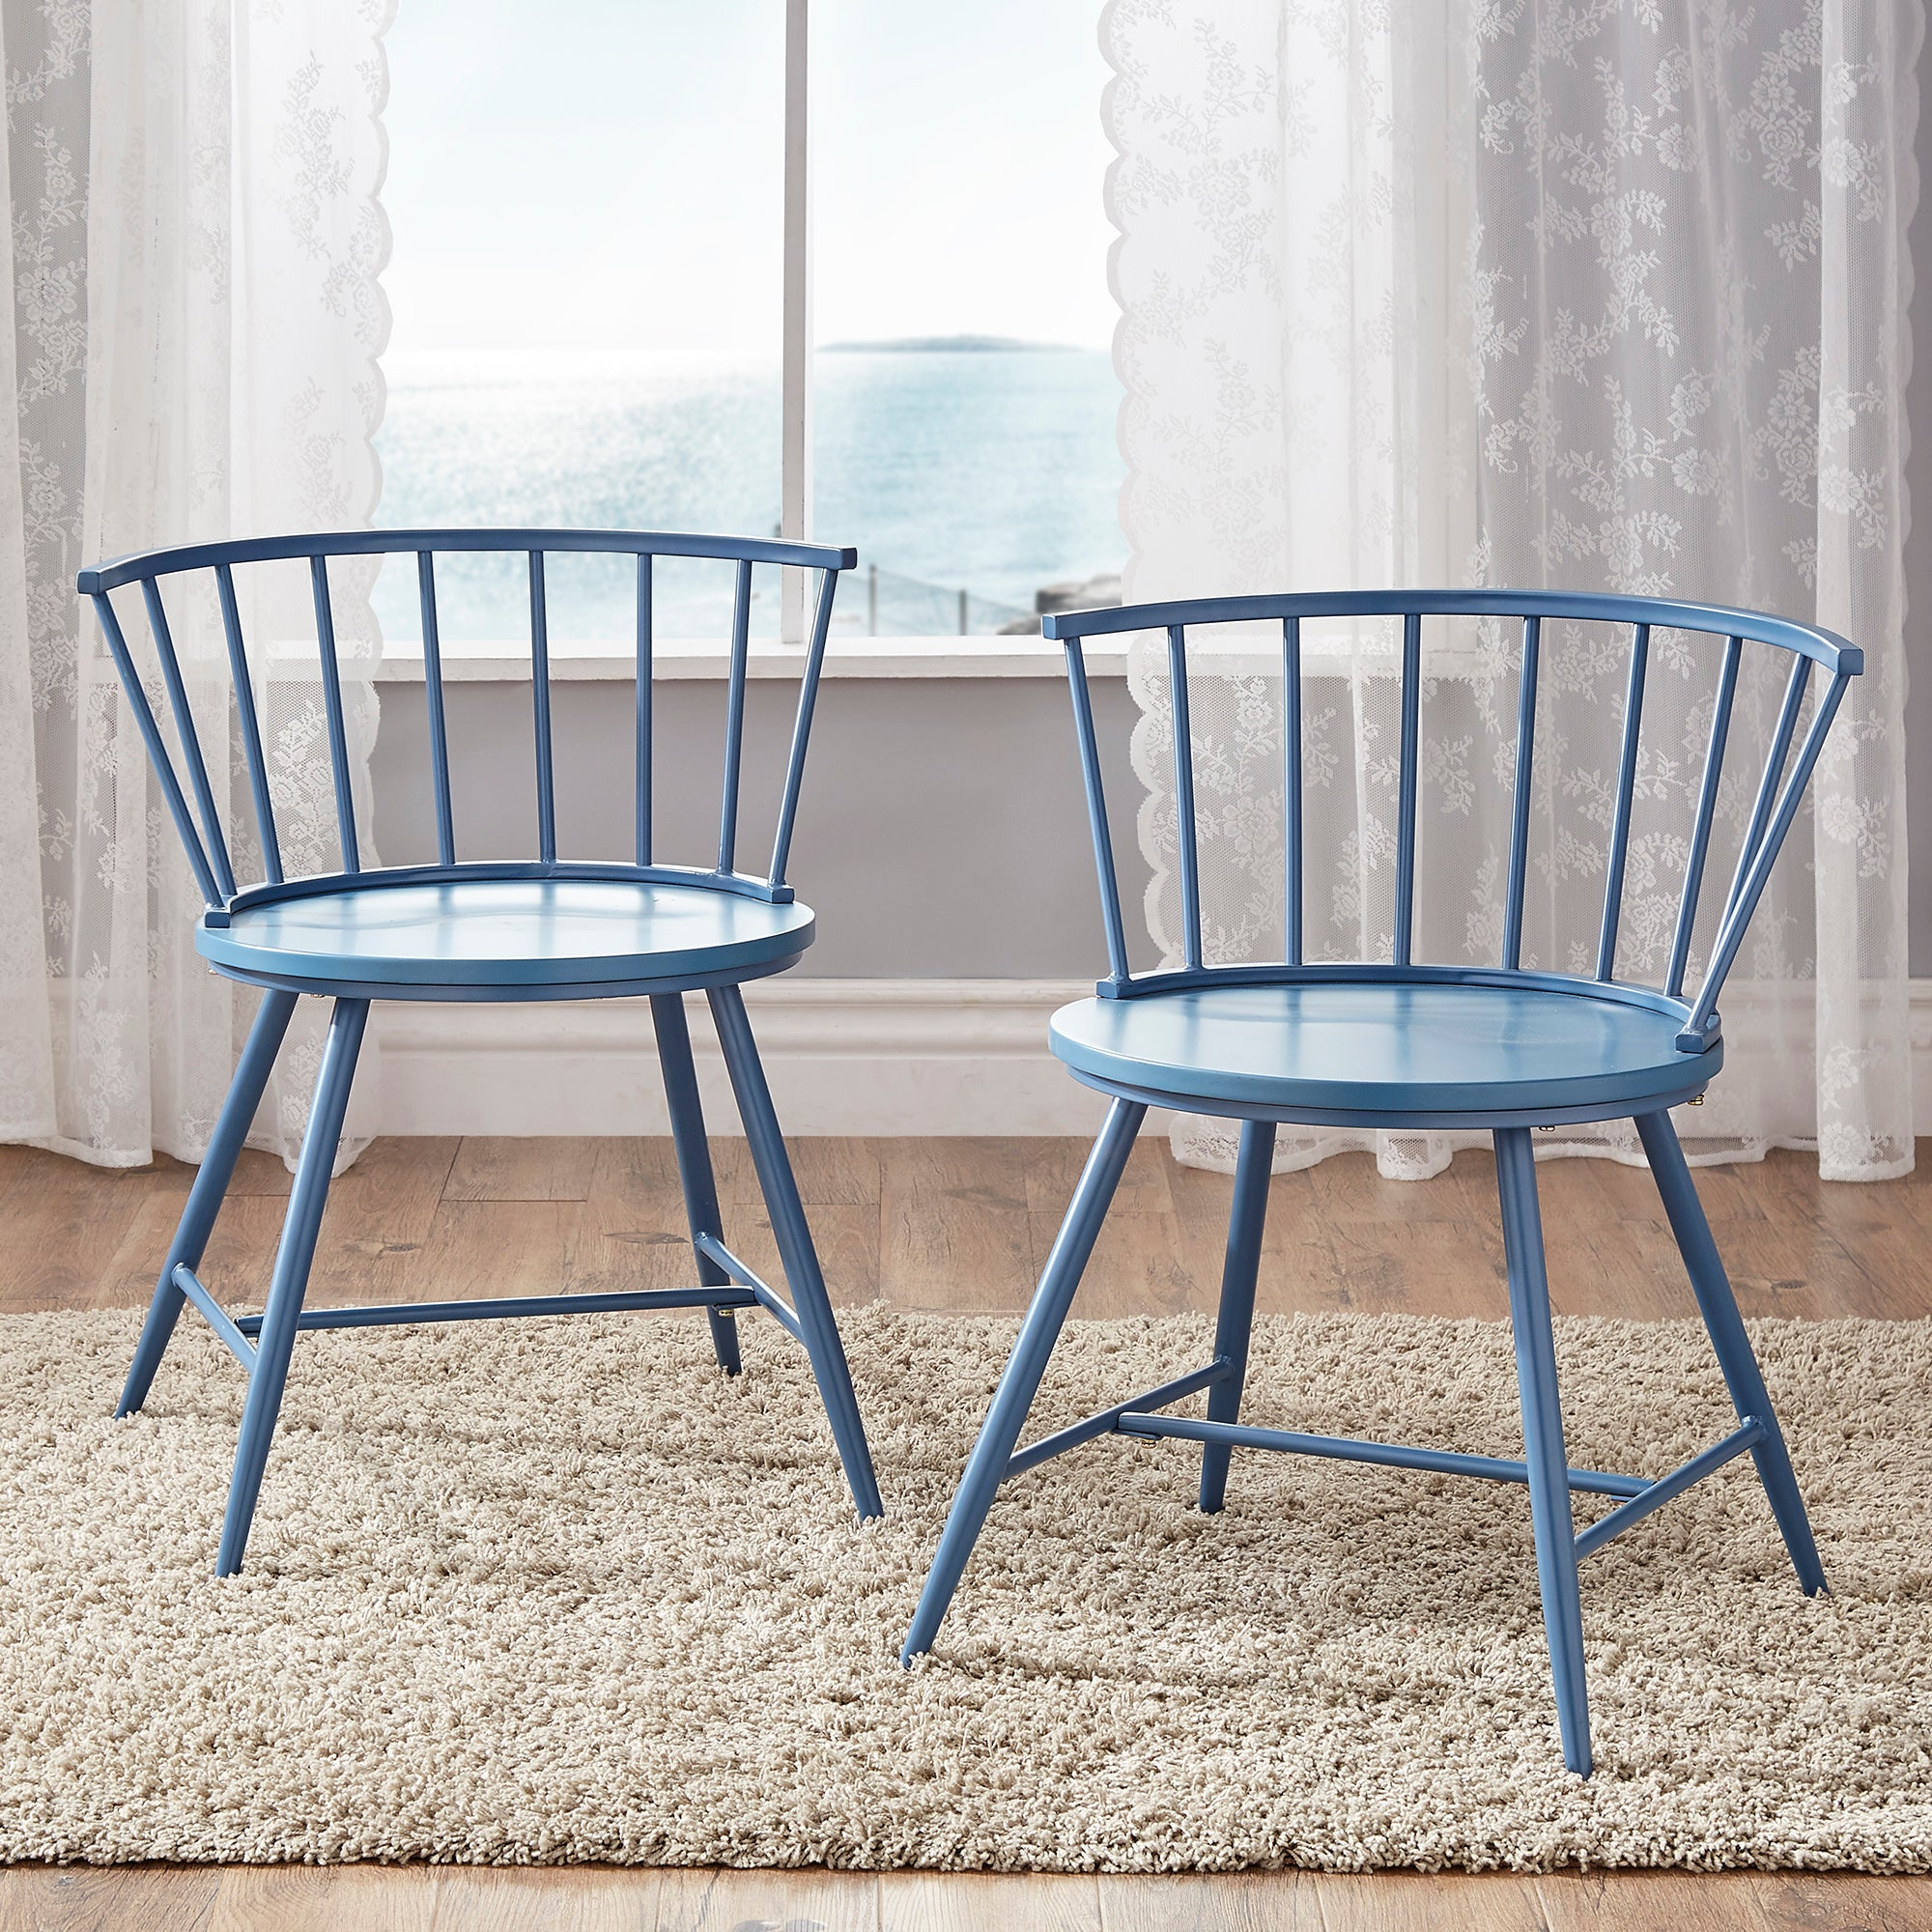 Low Back Windsor Classic Dining Chairs (Set of 2) - Blue Steel